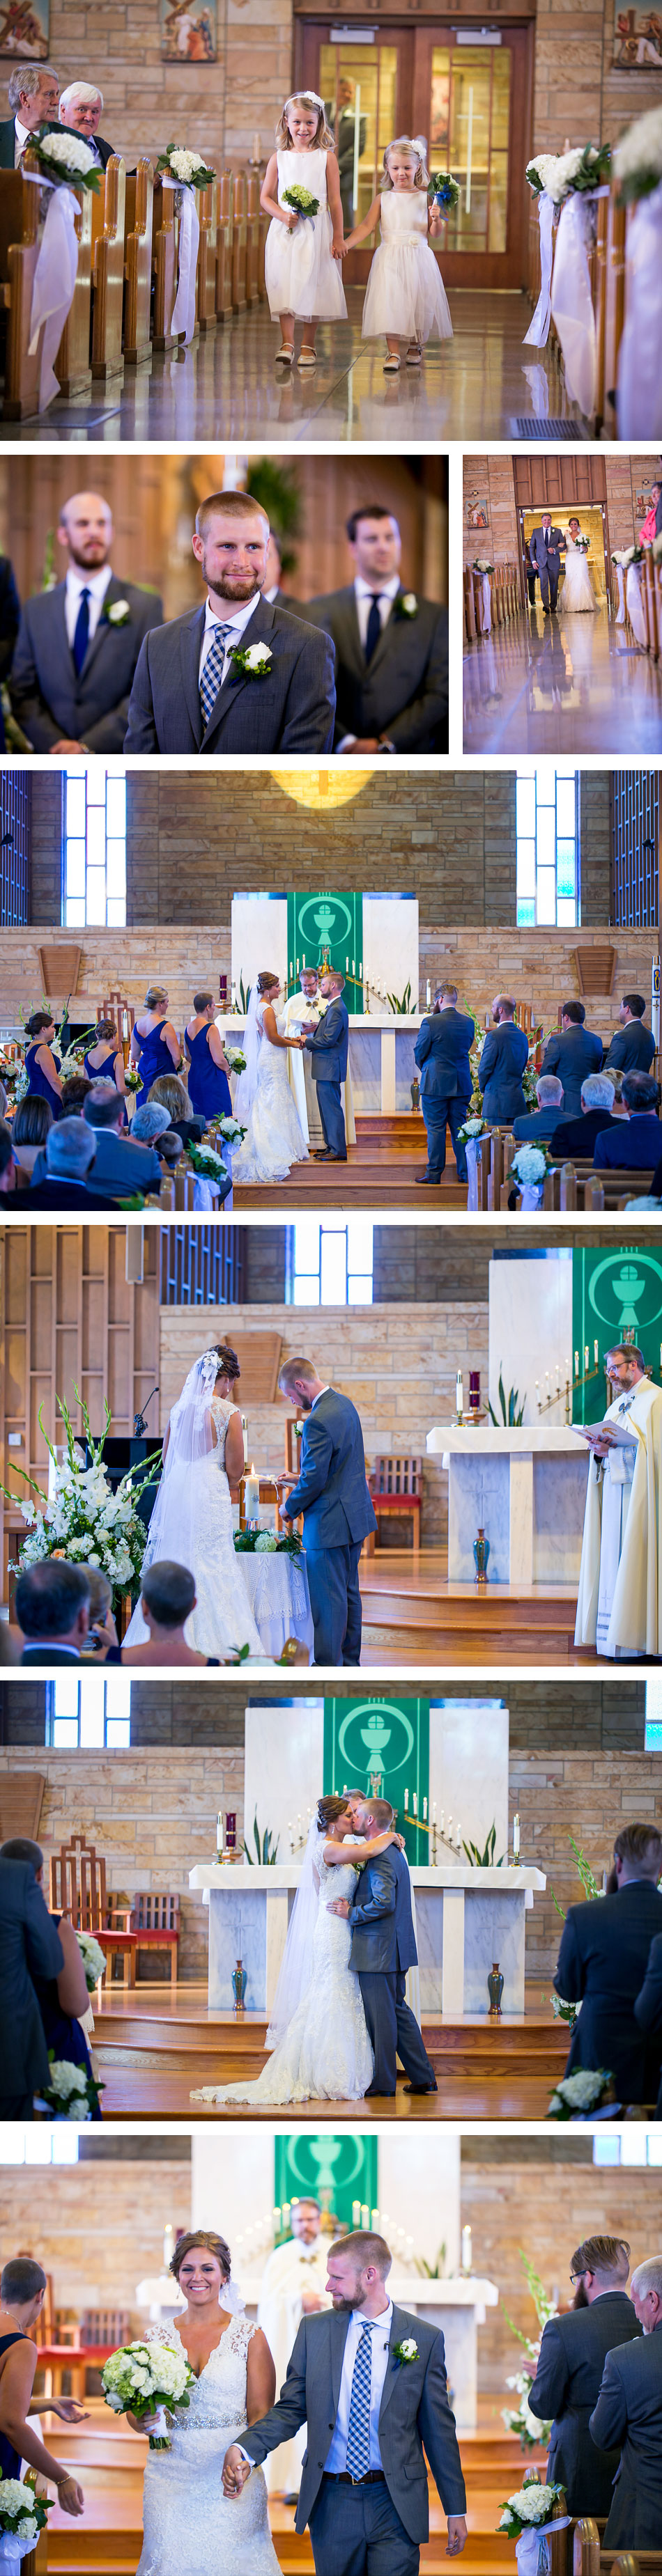 Wedding Ceremony at Our Lady of Perpetual Help